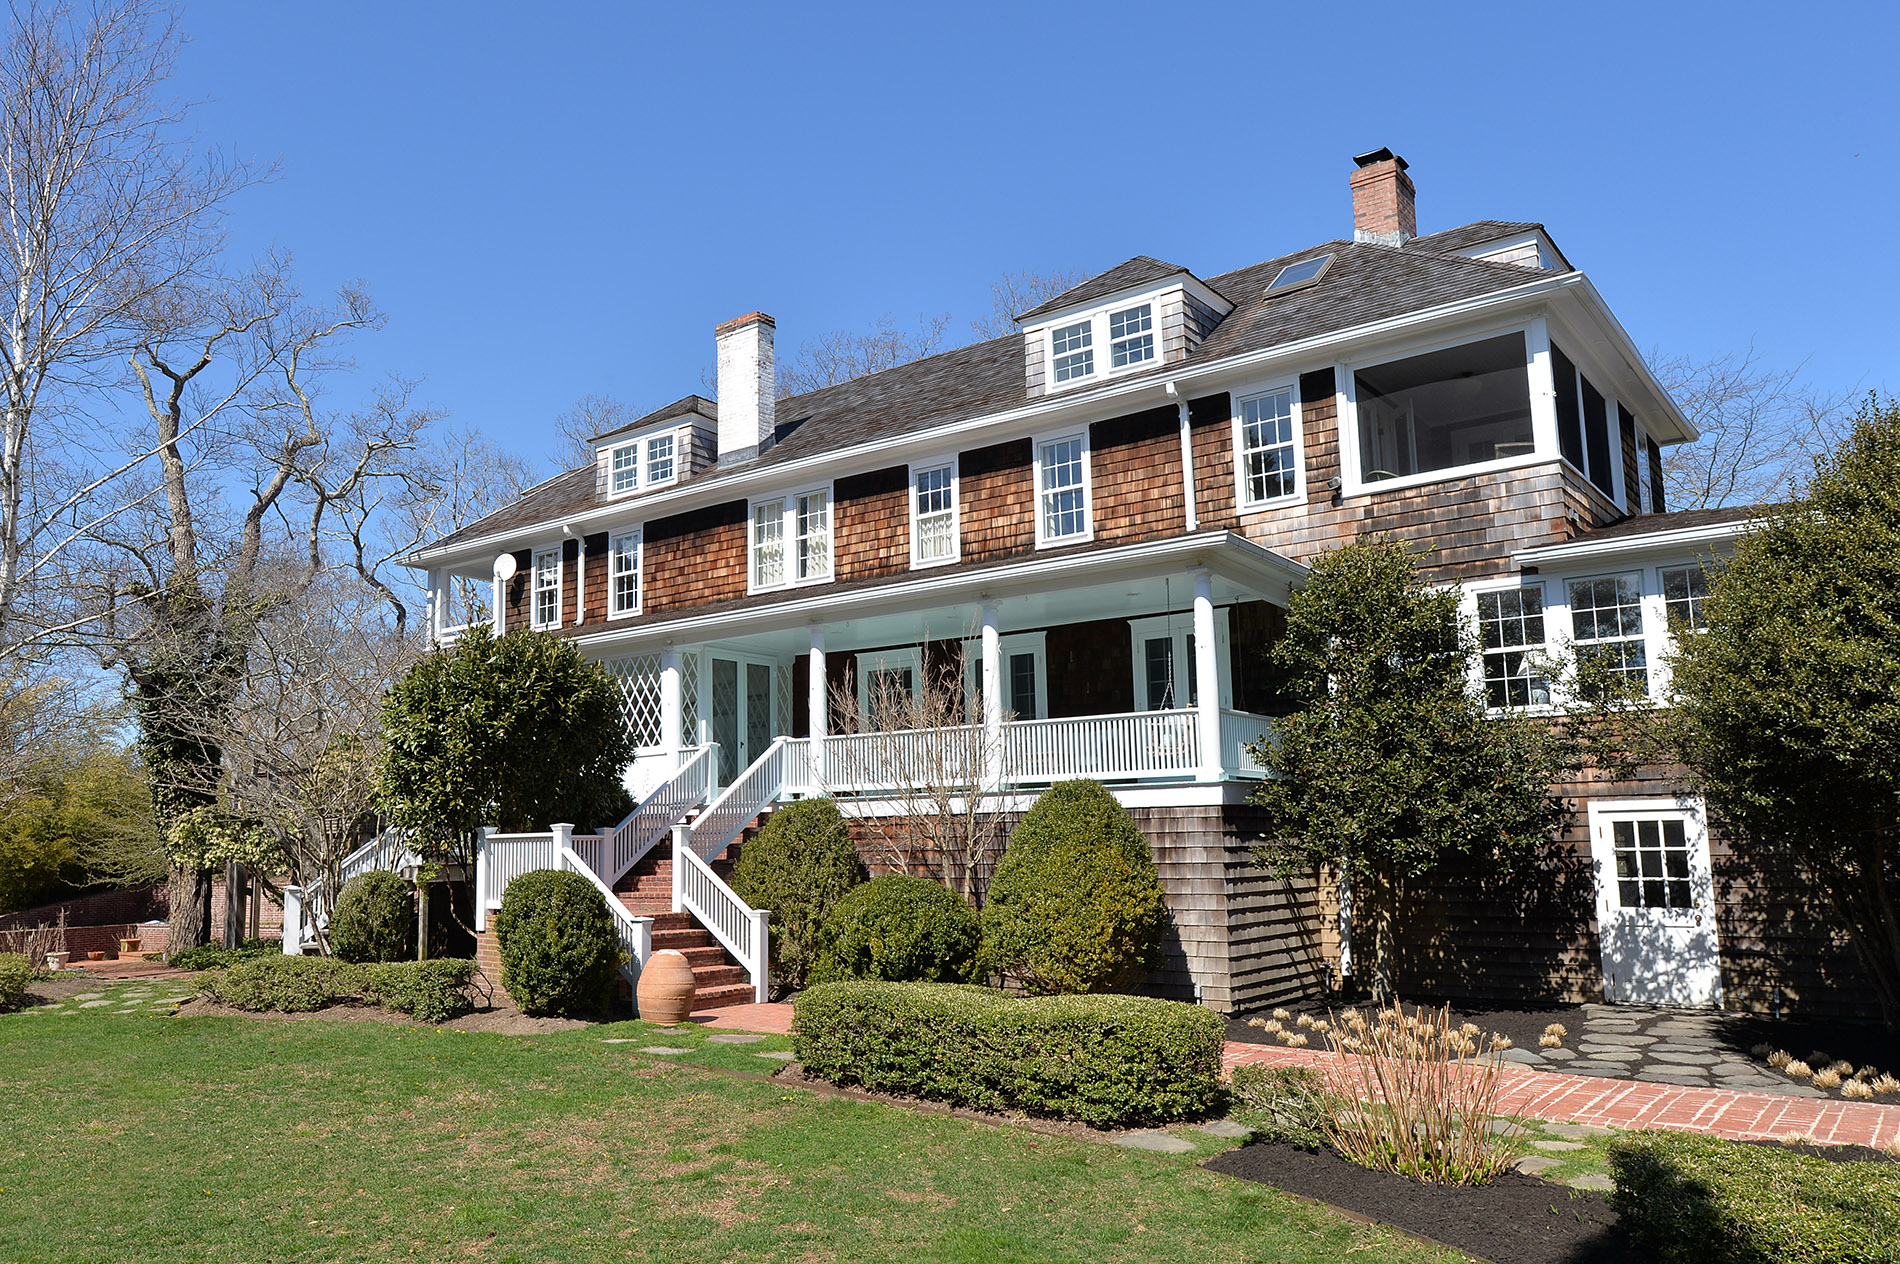 Image gallery houses east hampton ny for Mansions in the hamptons for sale